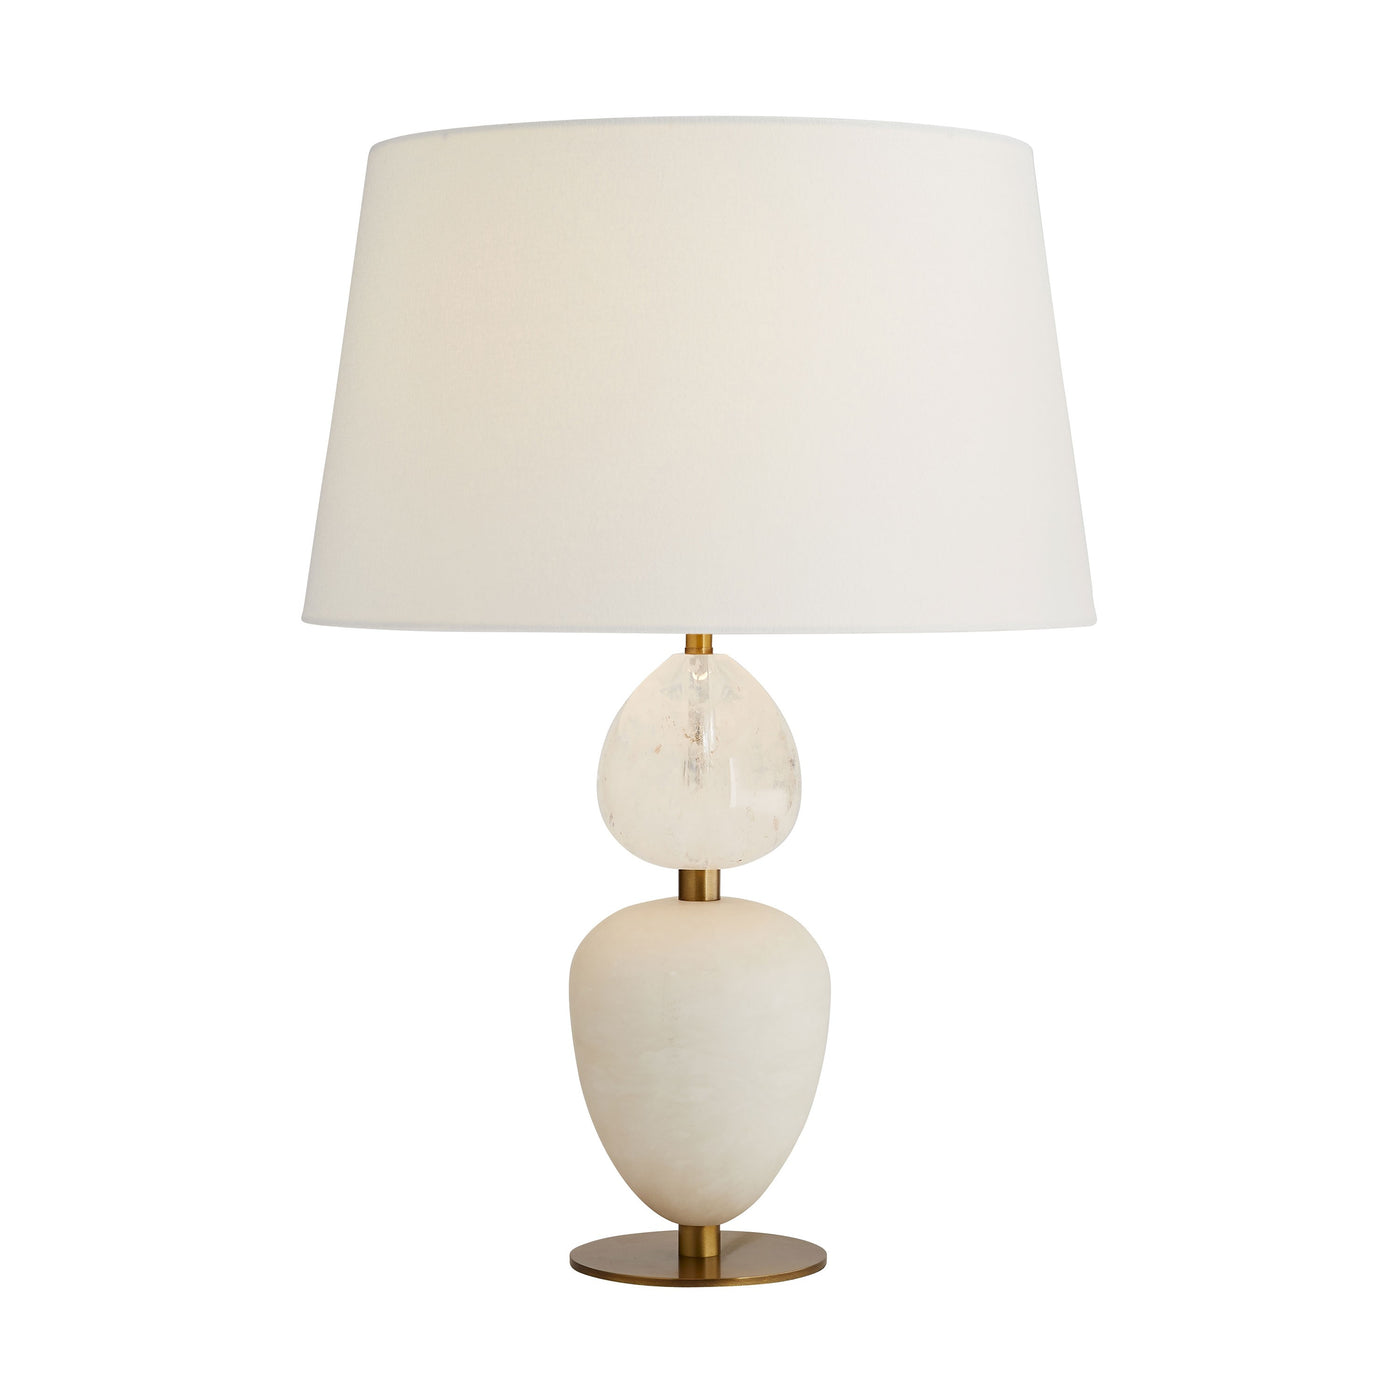 Arteriors-Home-Casper-Lamp-illuminated